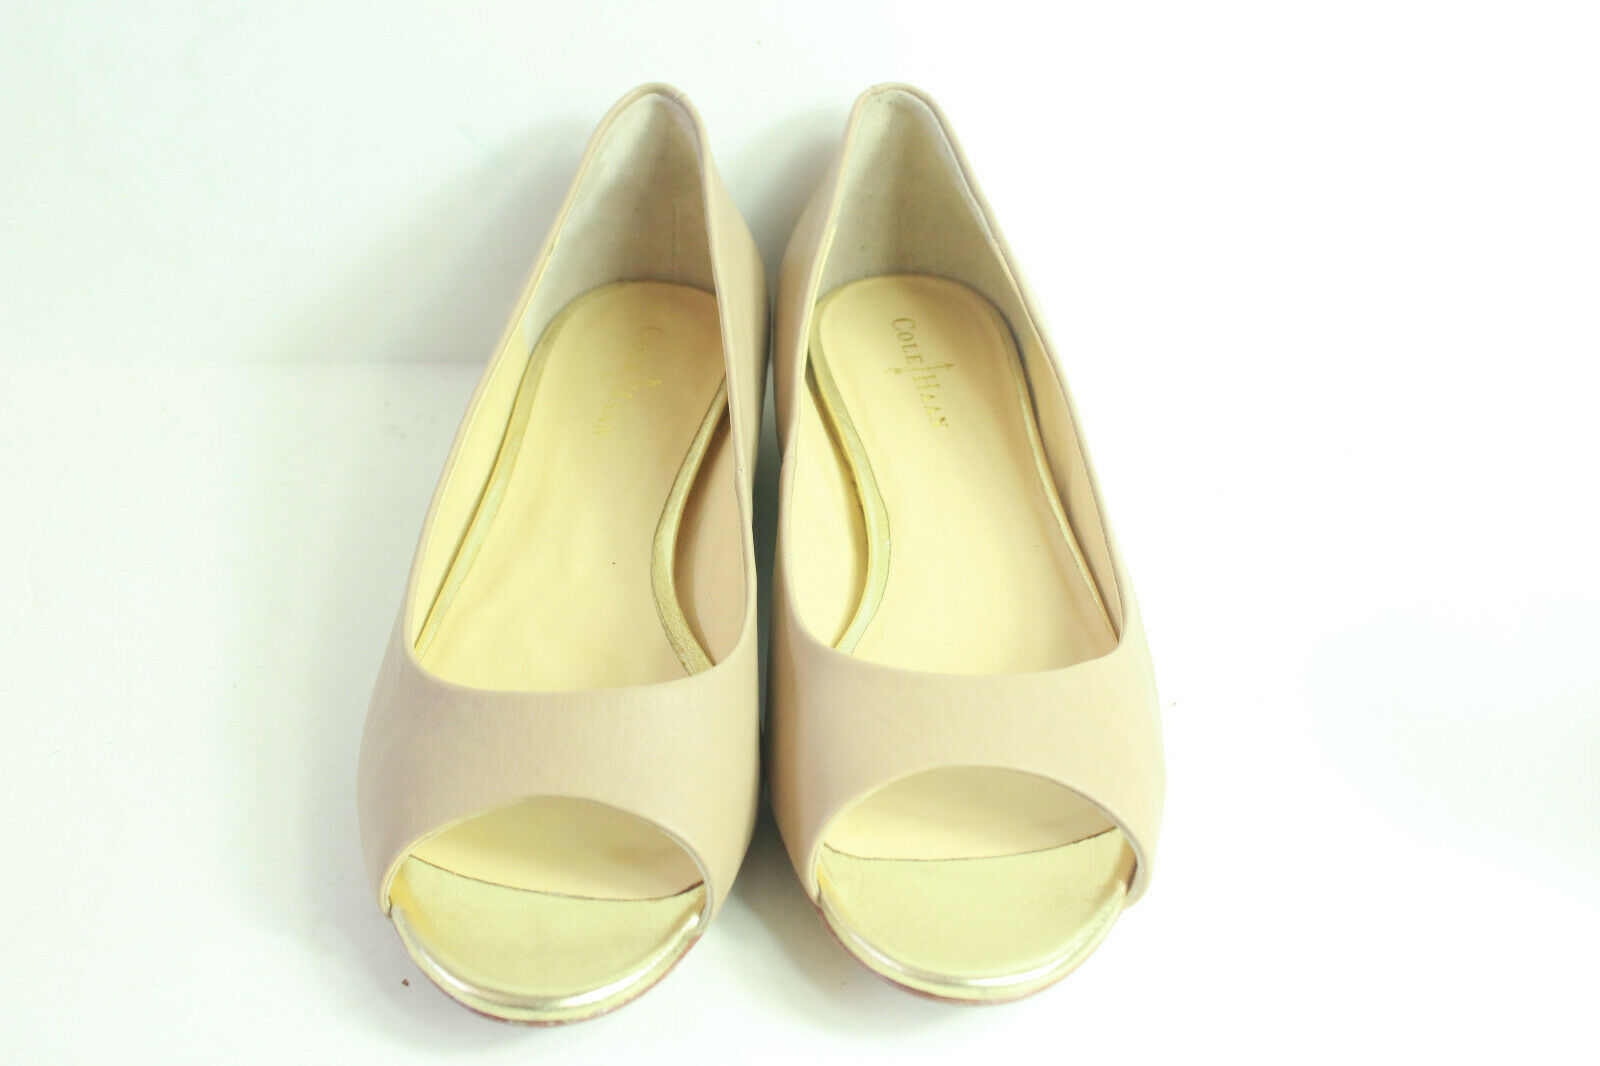 Cole Haan gold Leather Wedge Peep Toe Heels Women's Size Size Size 7 B 254eac